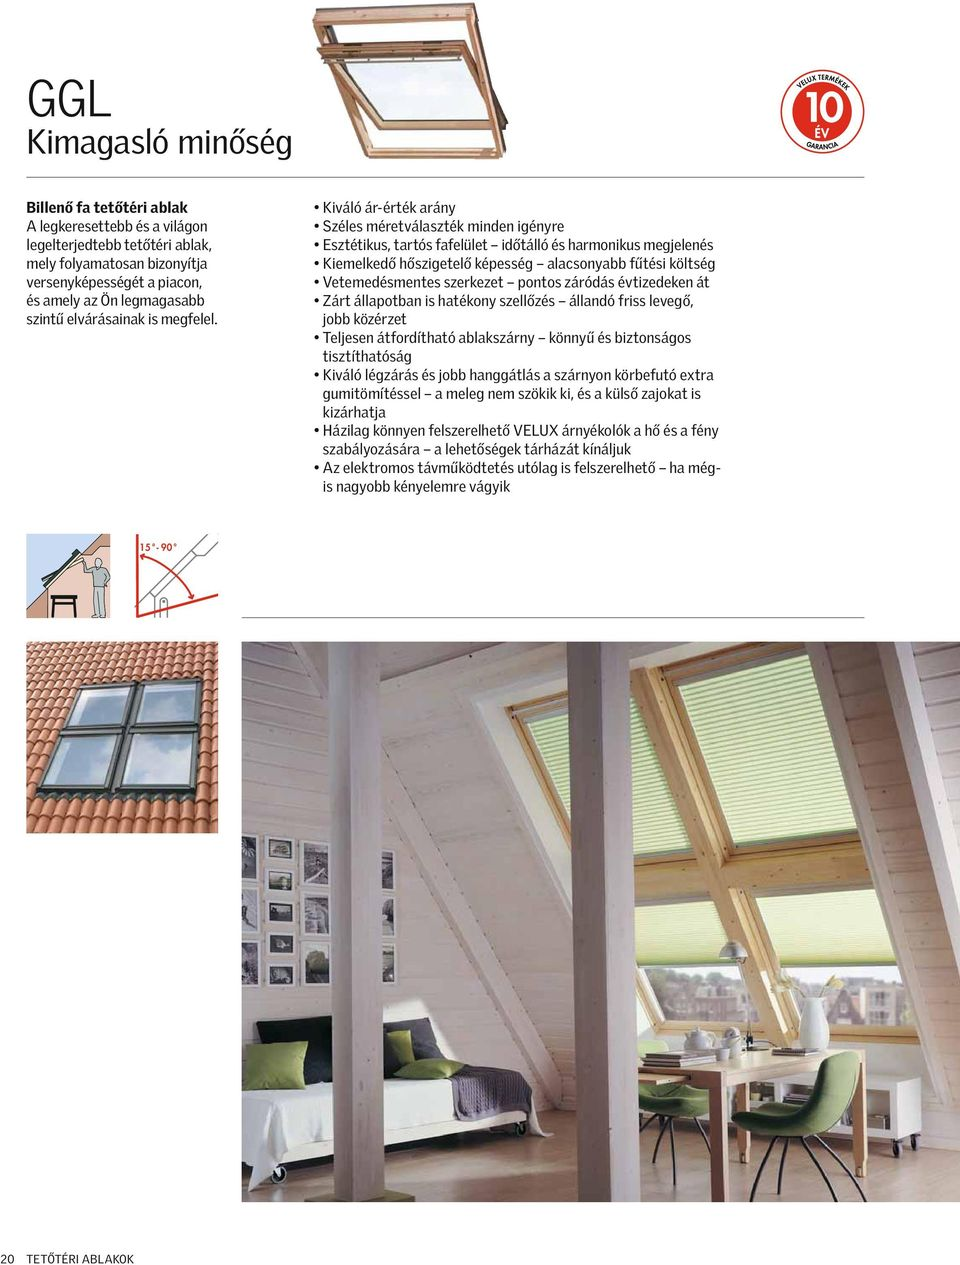 rkatal gus rv nyes prilis 1 j t l velux pdf. Black Bedroom Furniture Sets. Home Design Ideas